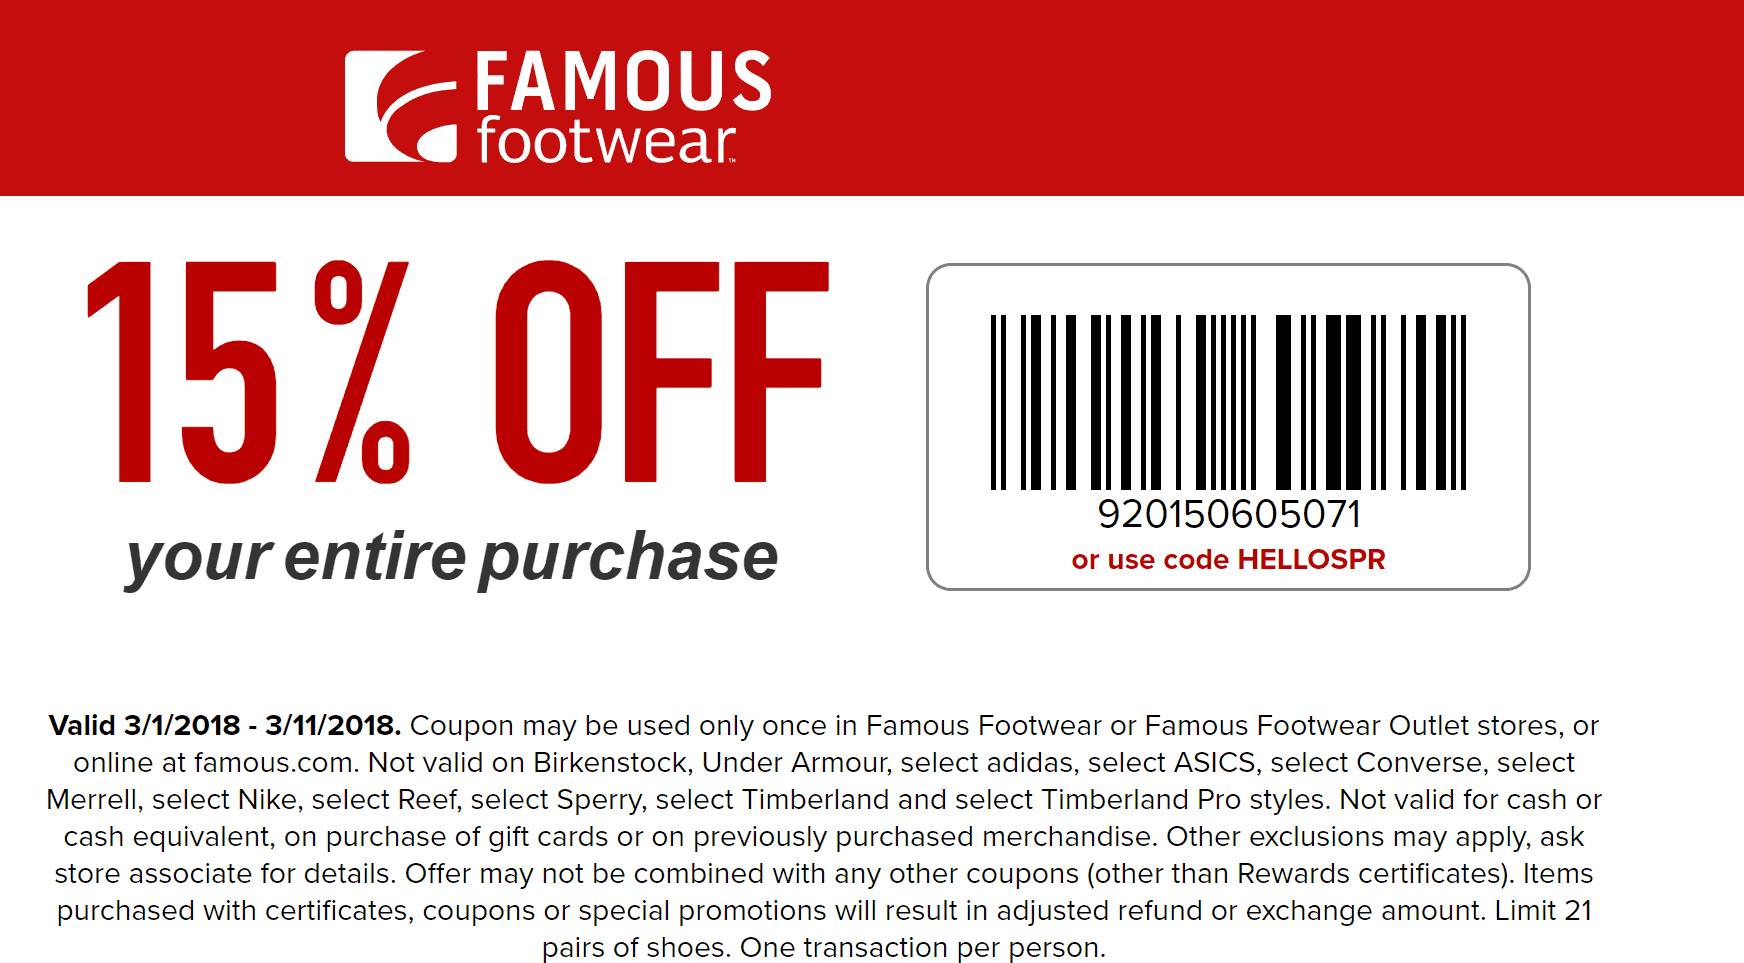 Famous Footwear Coupons 15% off at Famous Footwear, or